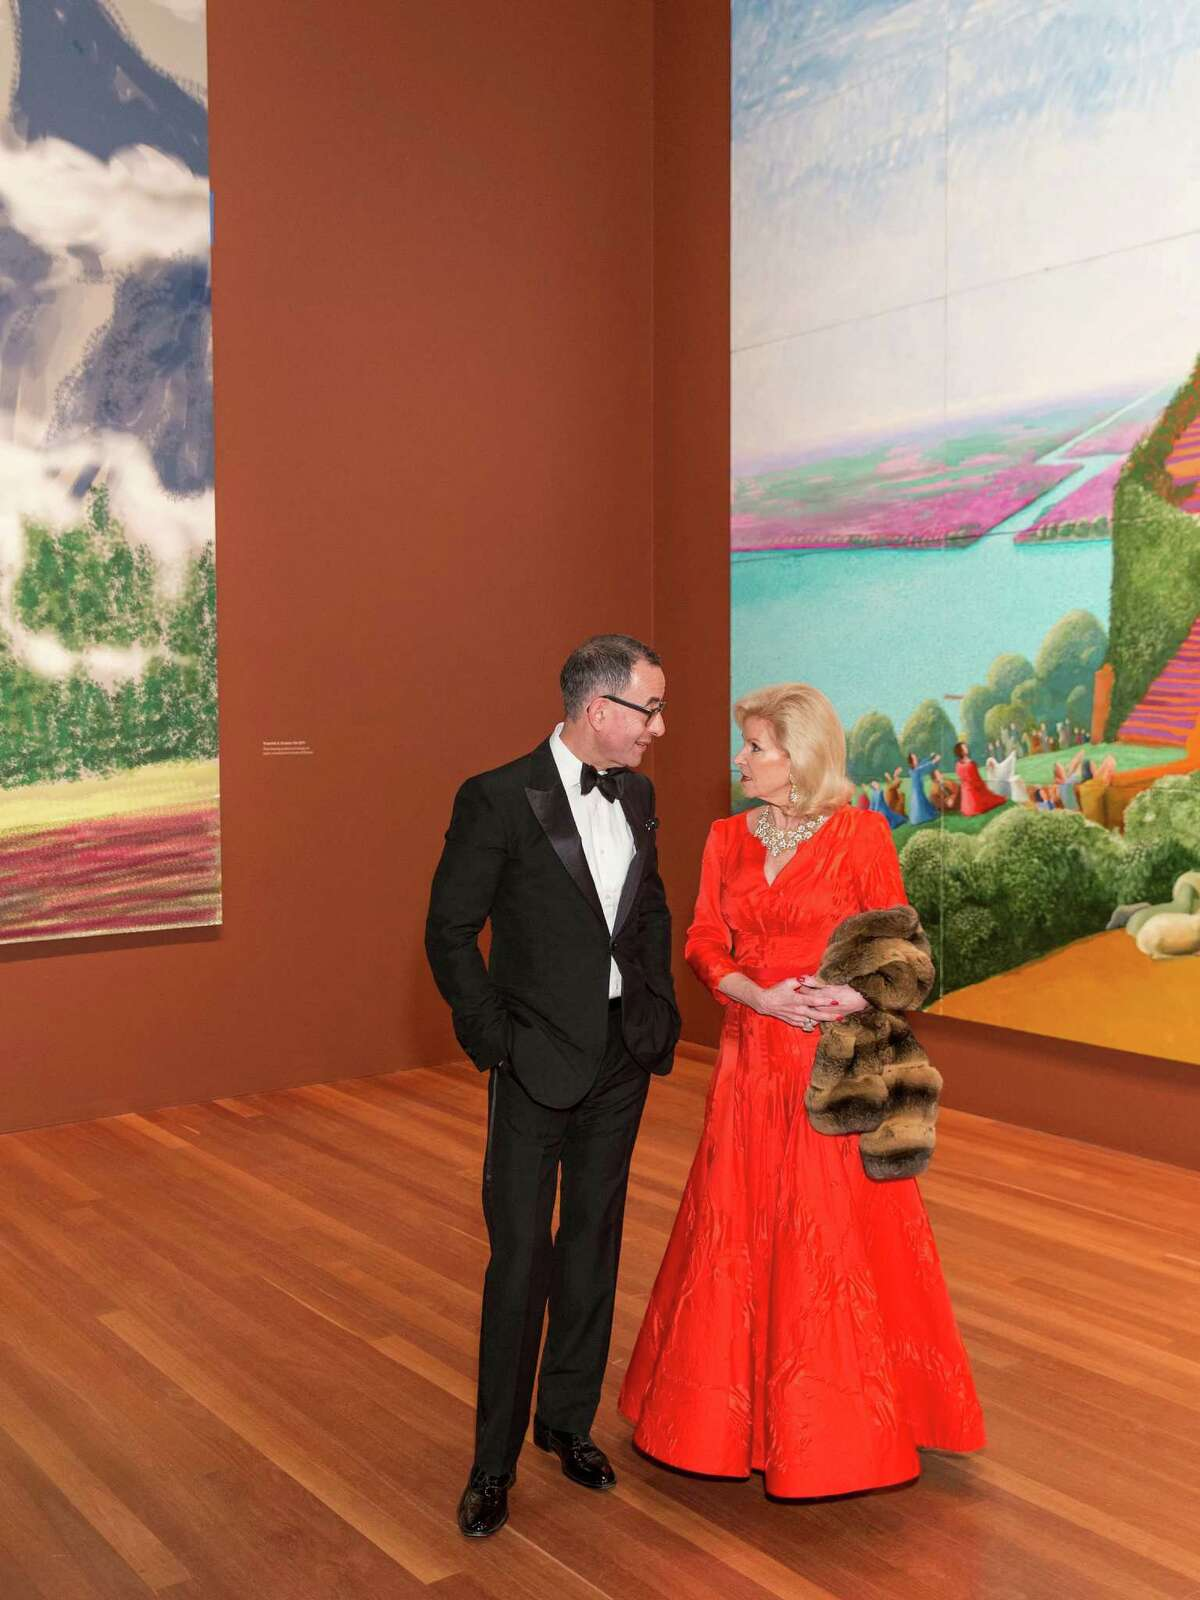 Colin B. Bailey and Dede Wilsey speak togther during dinner on October 22, 2013; the event celebrate artist David Hockney and the opening of his exhibition at the de Young.